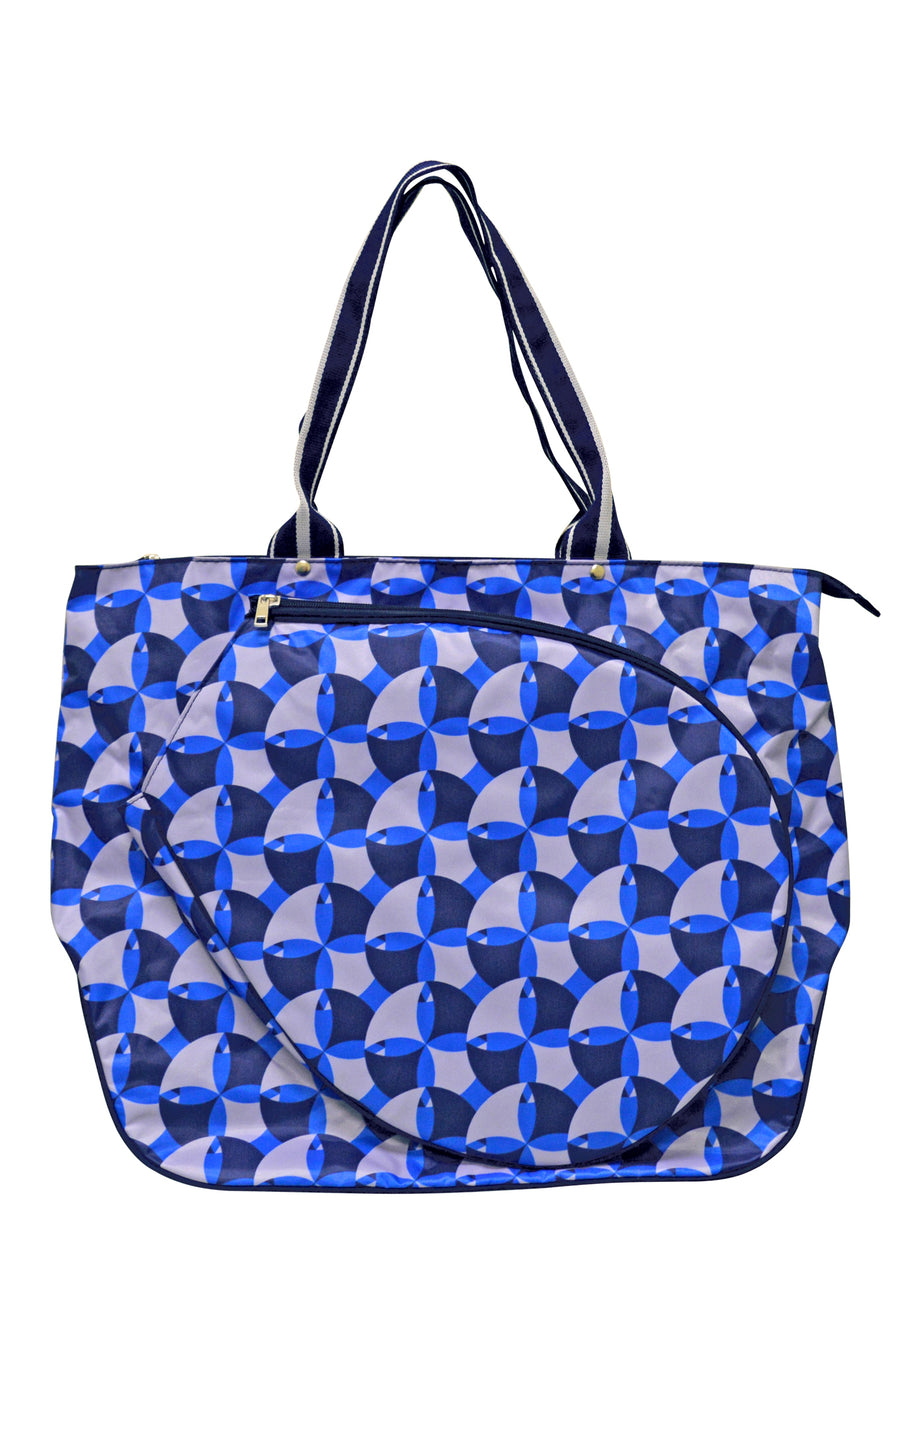 Serve It Up Tennis Tote - FINAL SALE